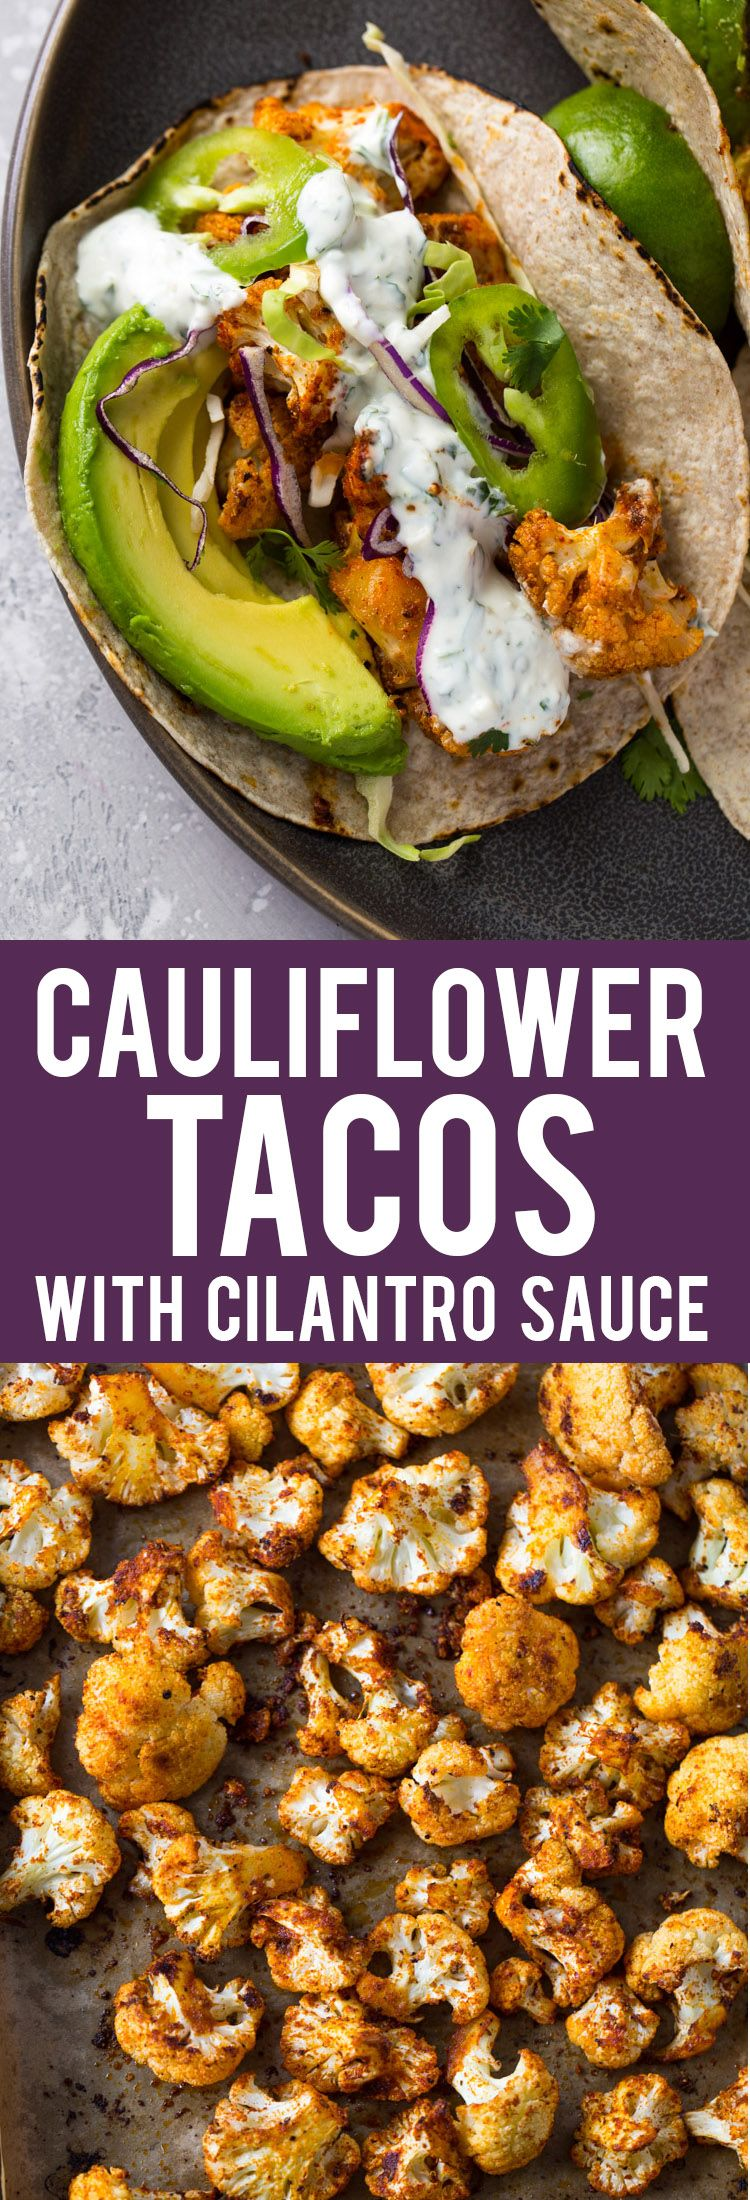 Roasted Cauliflower Tacos with Creamy Cilantro Sauce | Gimme Delicious #cilantrosauce